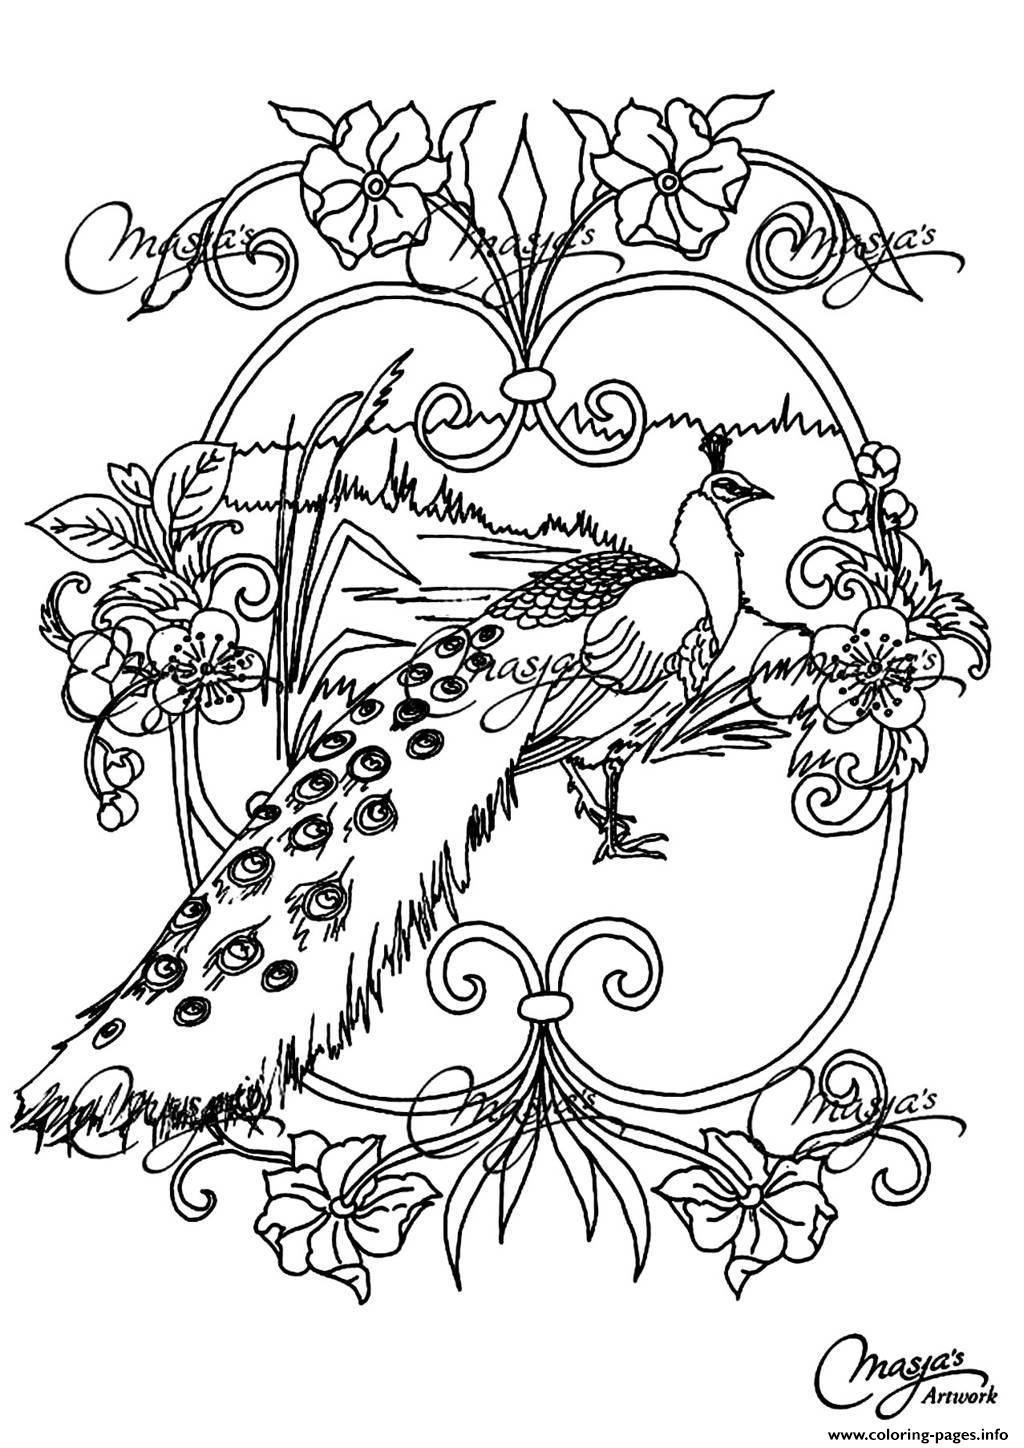 Adult Animals Peacock coloring pages